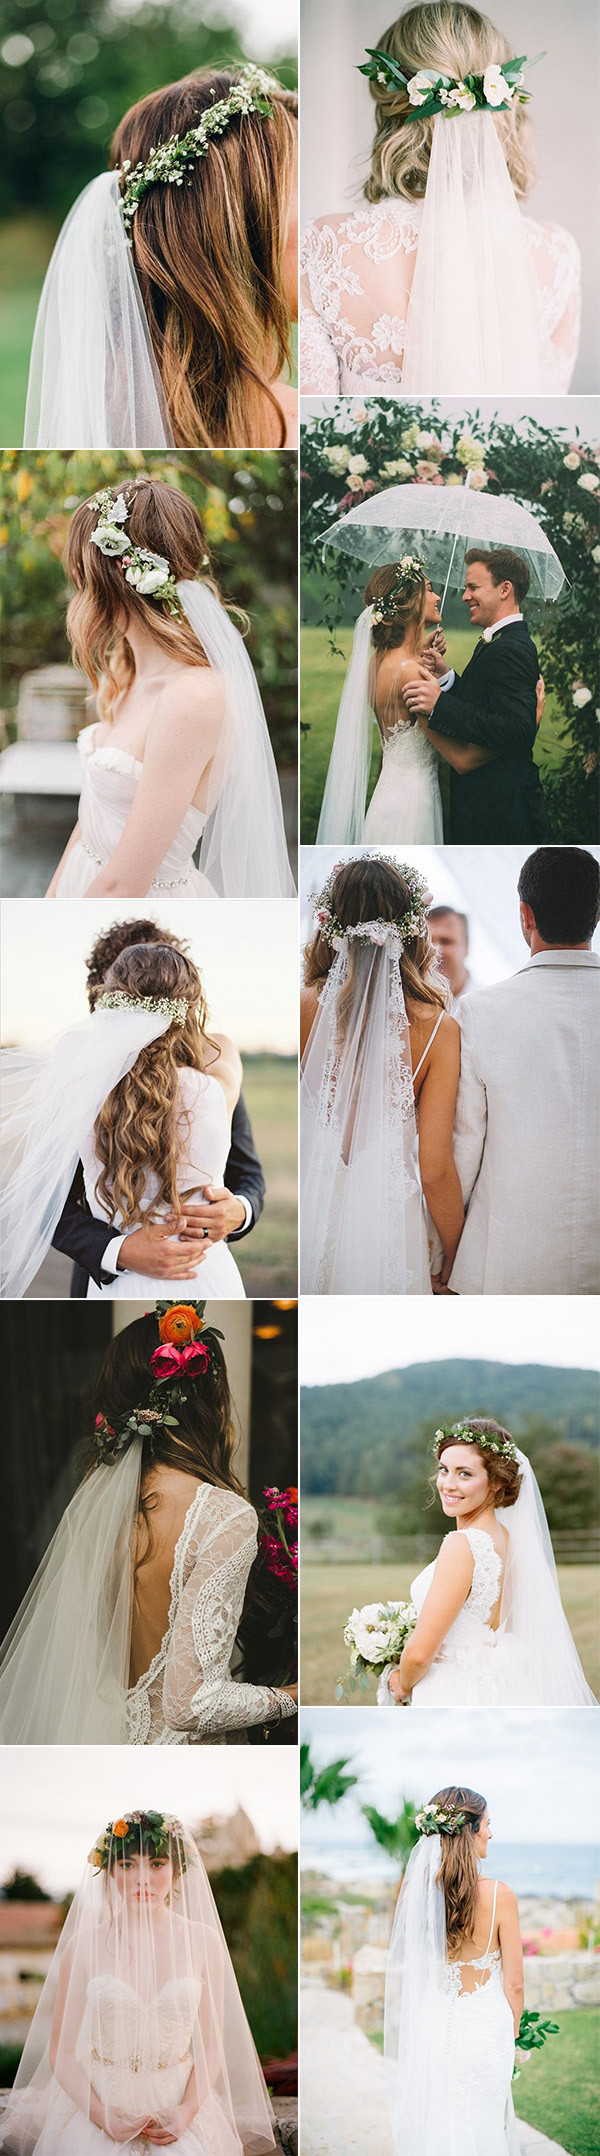 bridal hairstyle look with flower crown and veils